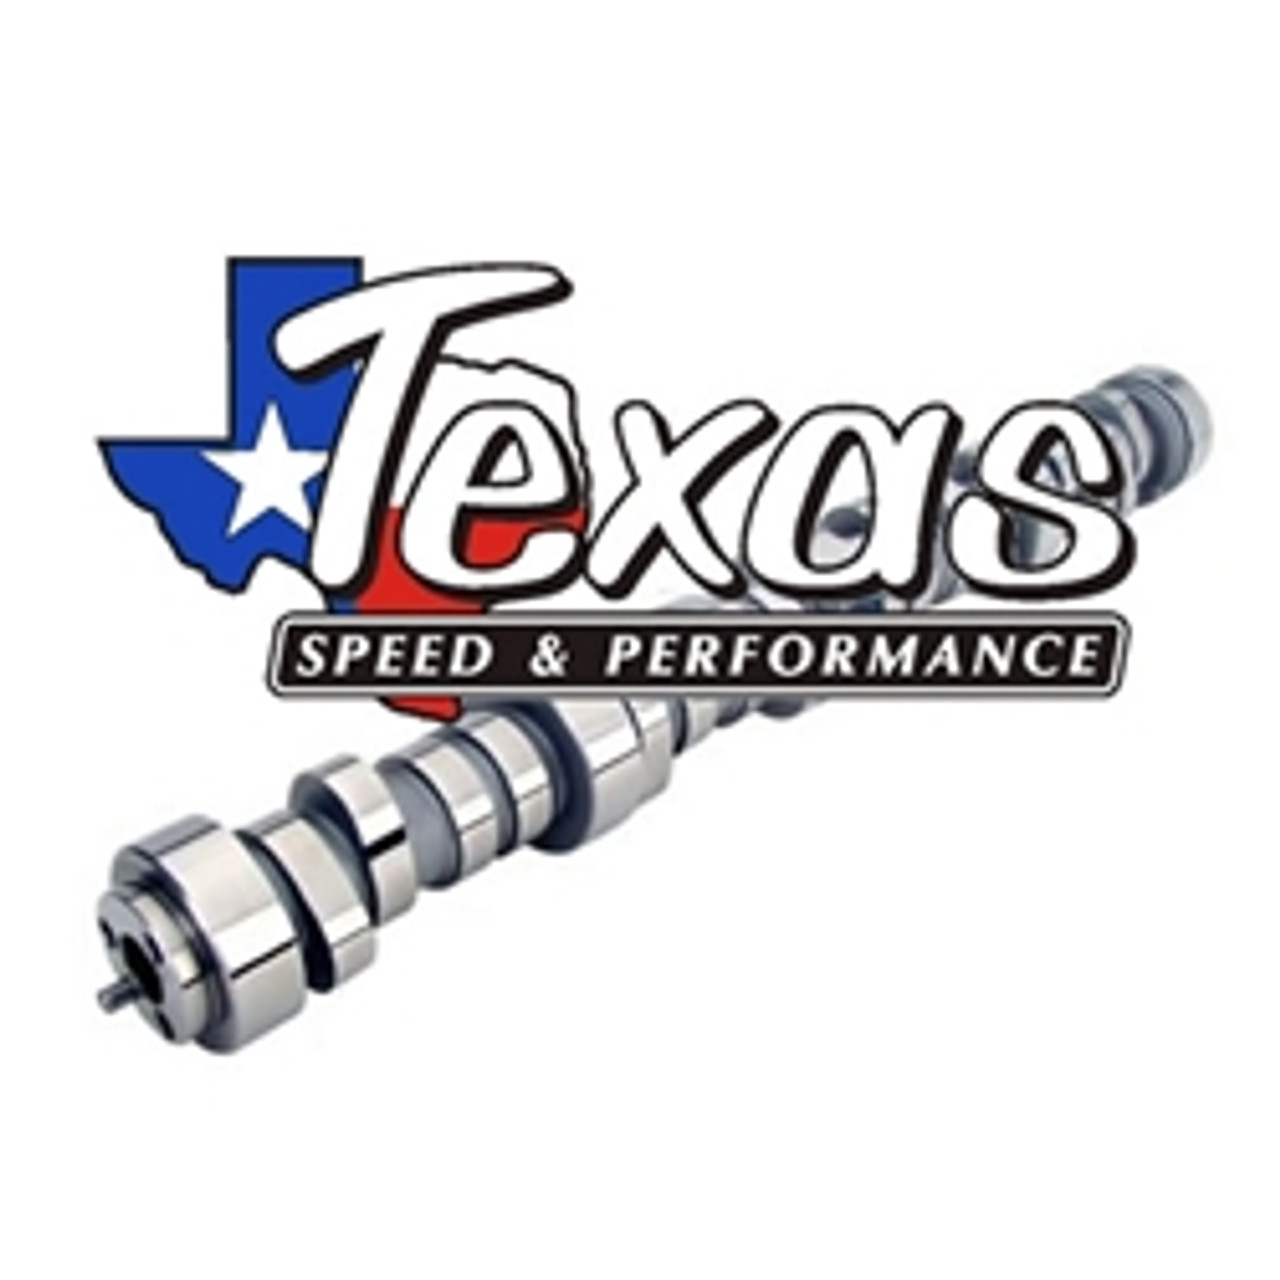 Texas Speed LS1/LS2 Turbo Stage 2 Camshaft Package